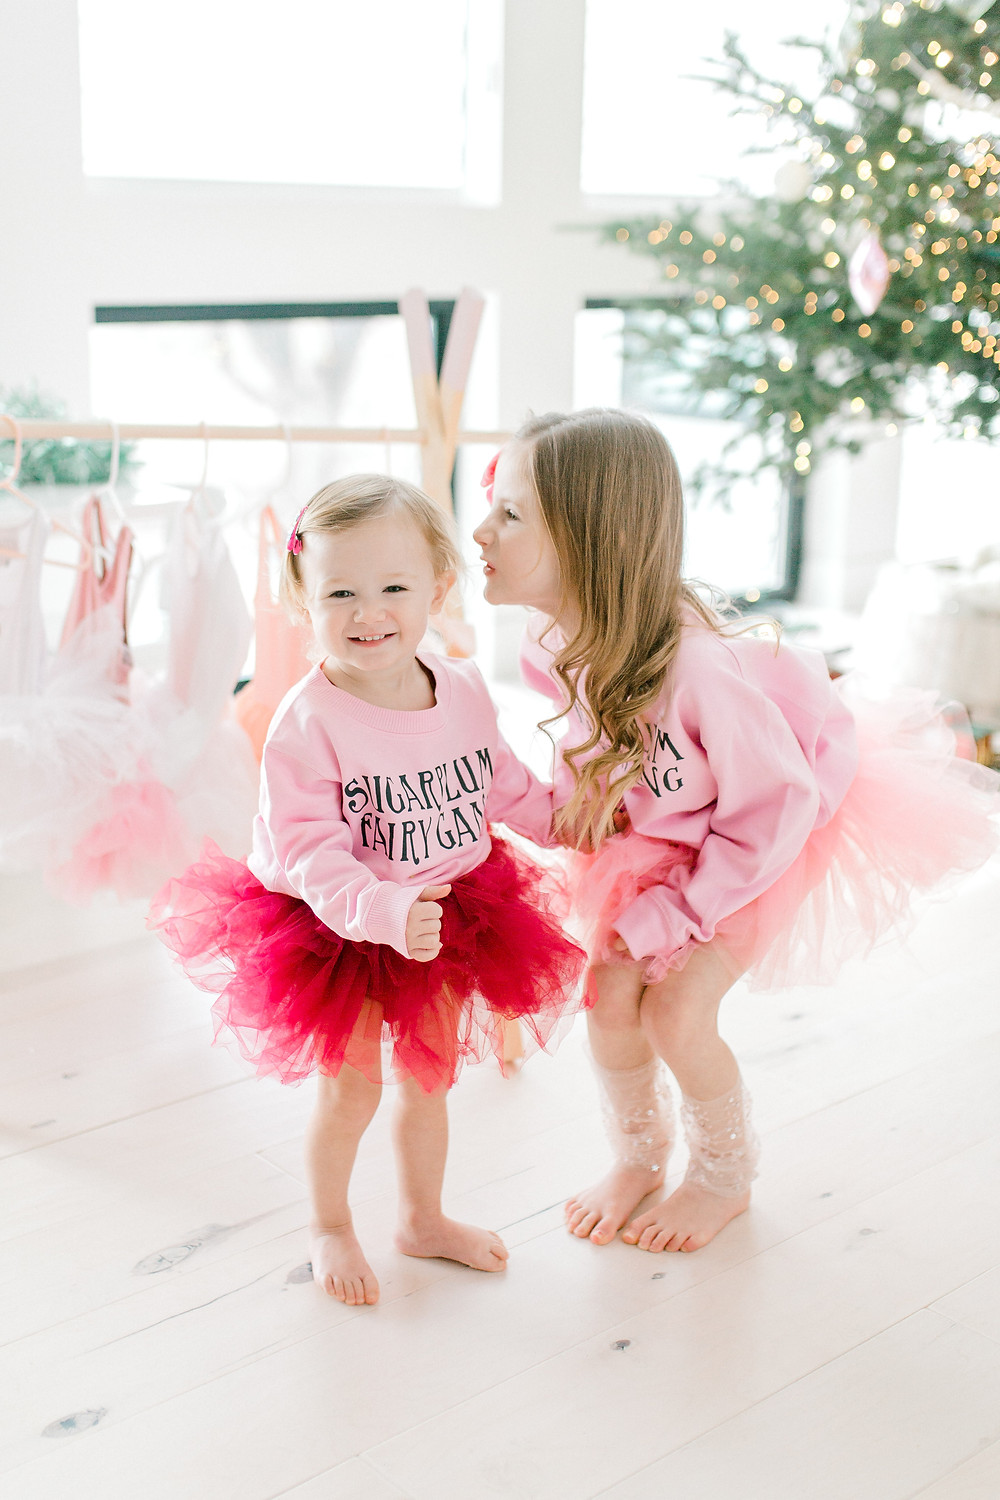 two sisters in pink and red tutu's are dancing together in their sugarplum fairy sweaters in front of a lit Christmas tree.